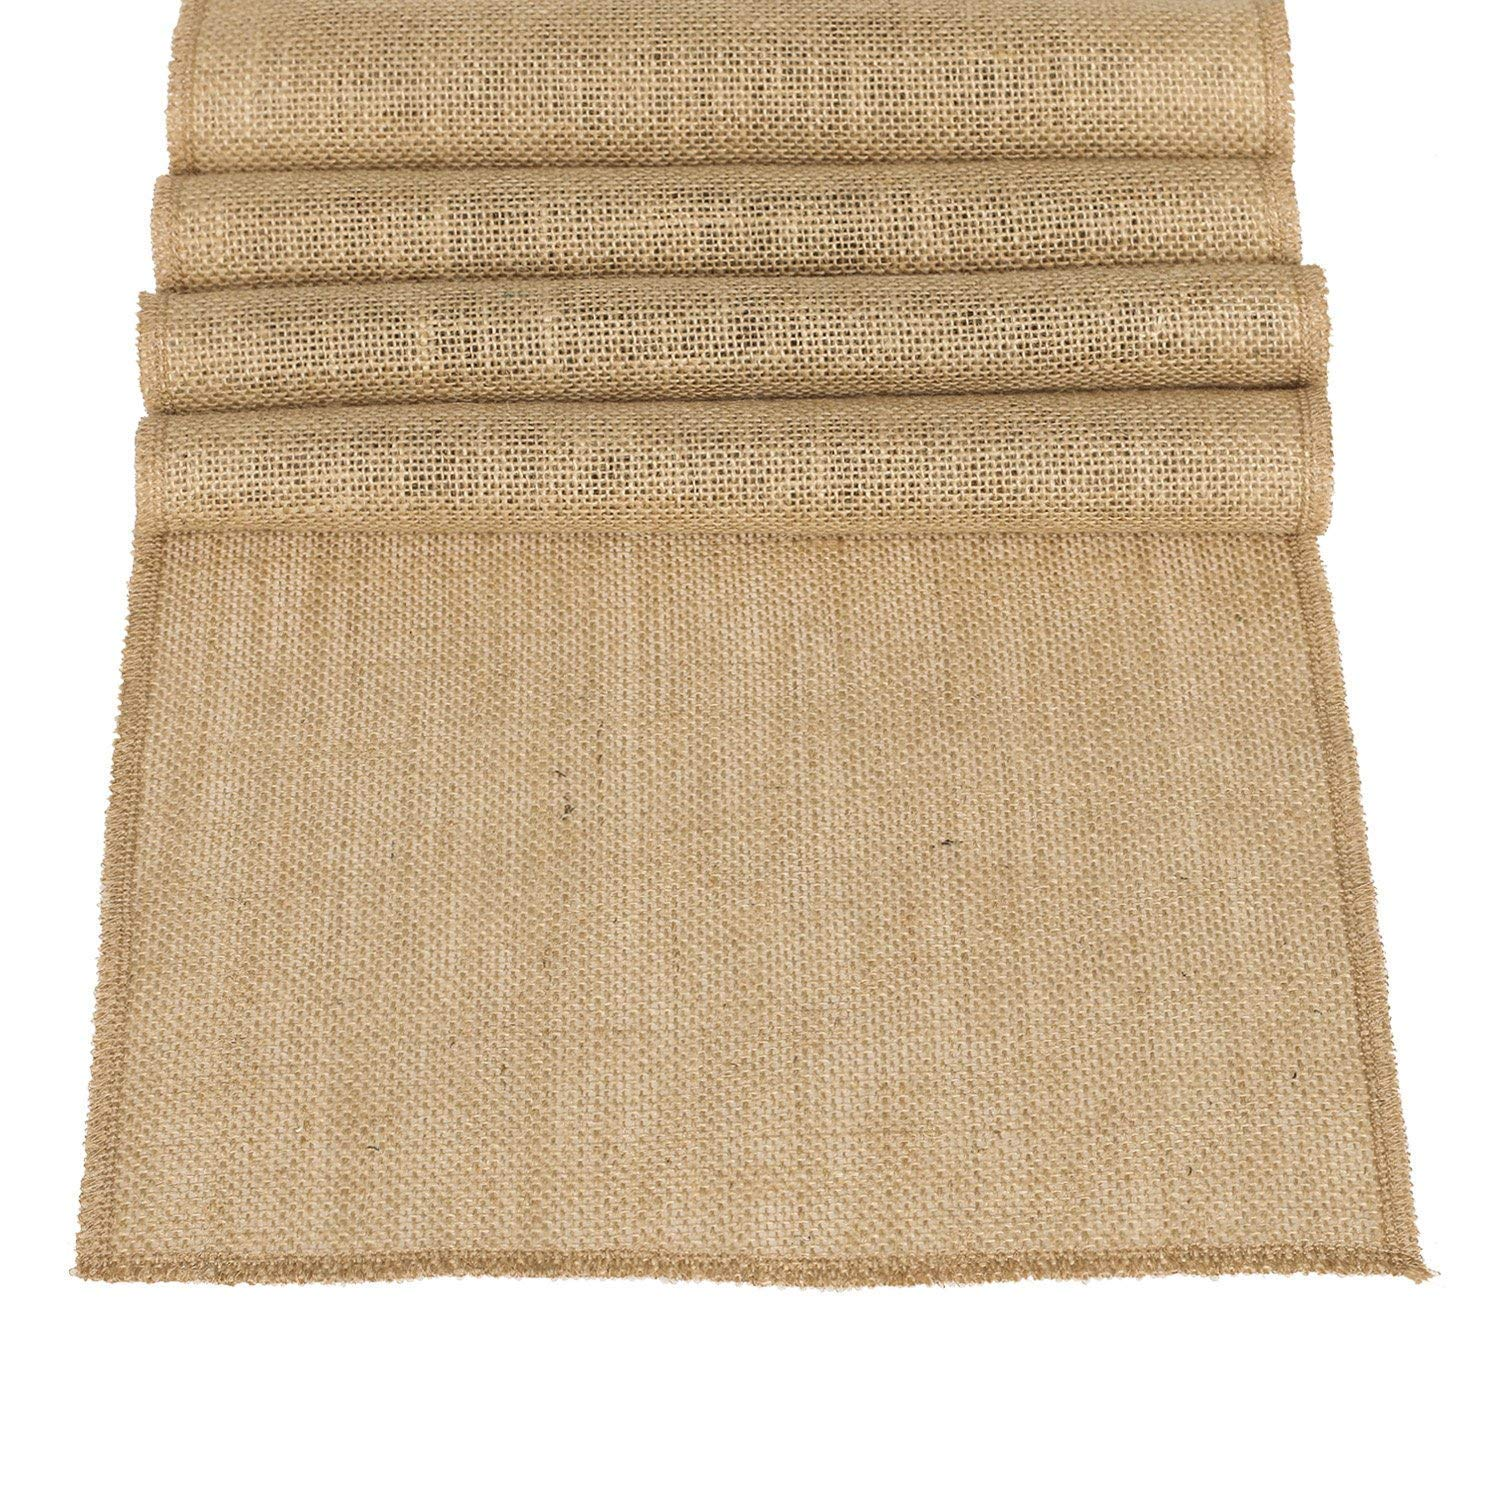 Ling's moment 12 x 108 Inches Jute Farmhouse Table Runner Burlap Table Decor Bamboo for Winter Rustic Wedding Decorations Woodland Baby Shower Country Kitchen Boho Out Table Decor